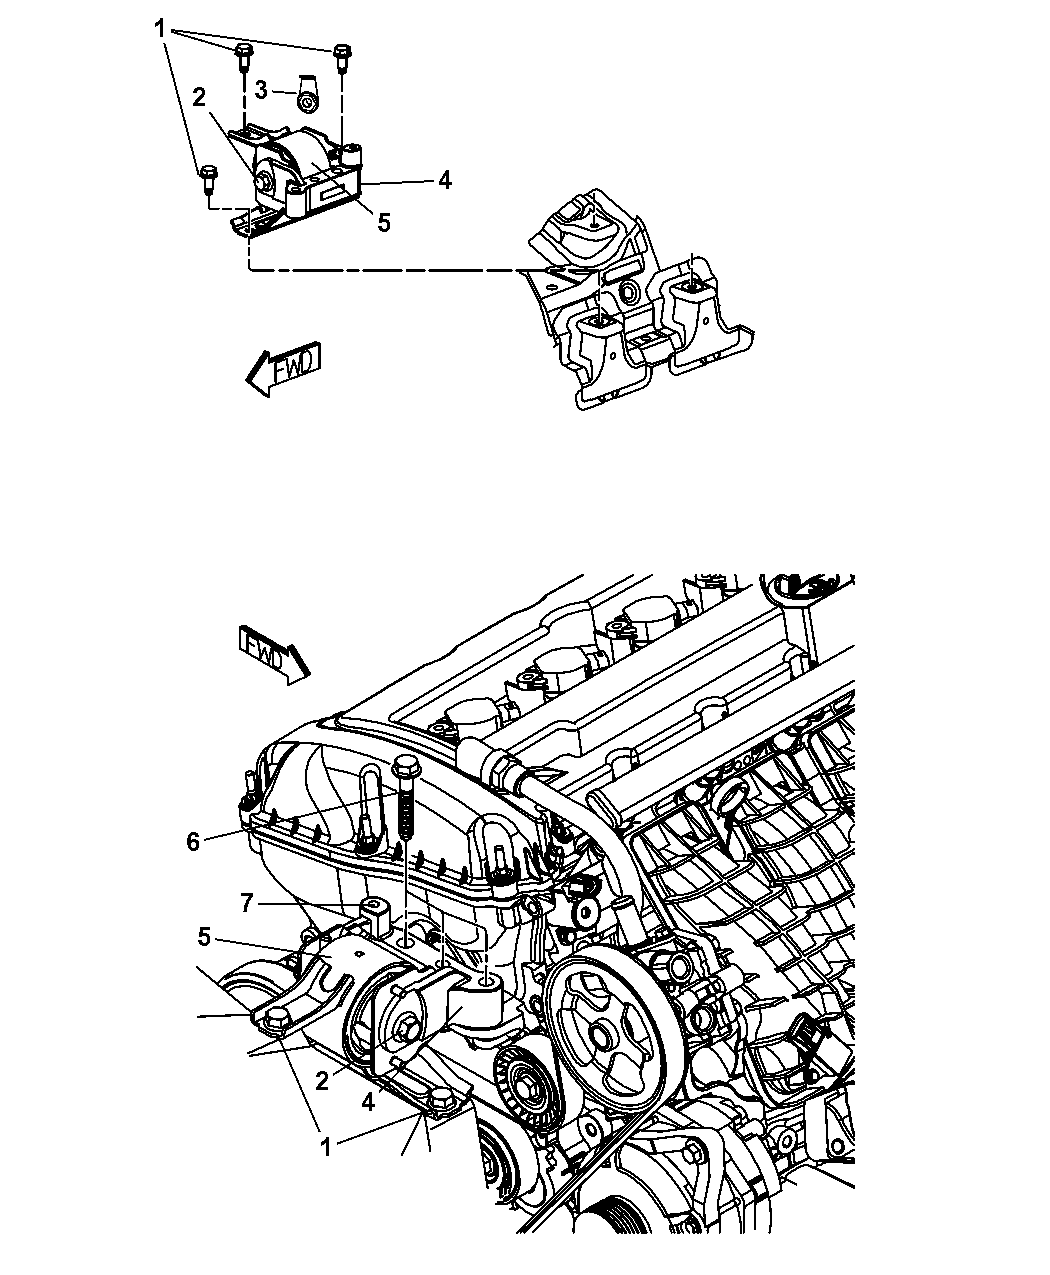 mopar 5105489ag 2012 Ford Transit Connect Engine Diagram